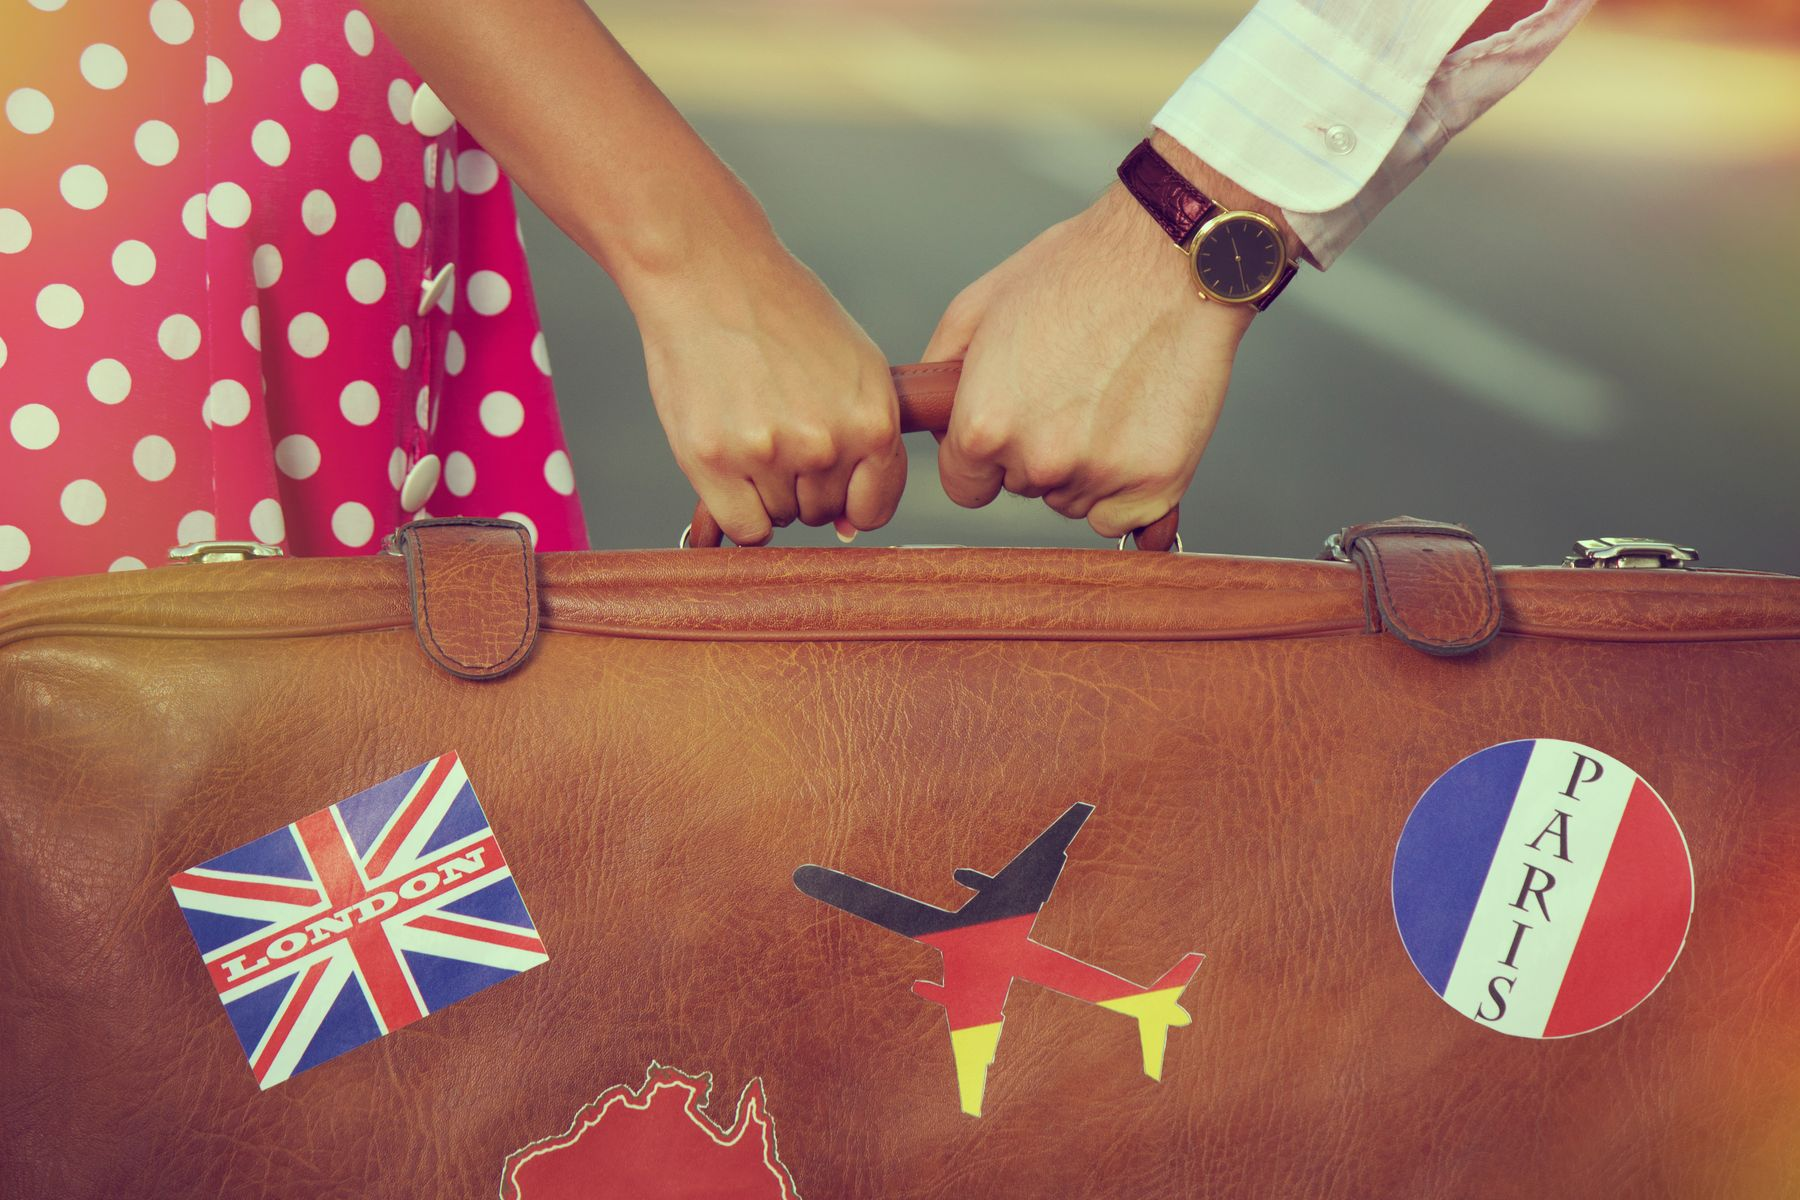 With the new Ryanair hand luggage rules, pooling your luggage with a partner or friend is a smart idea